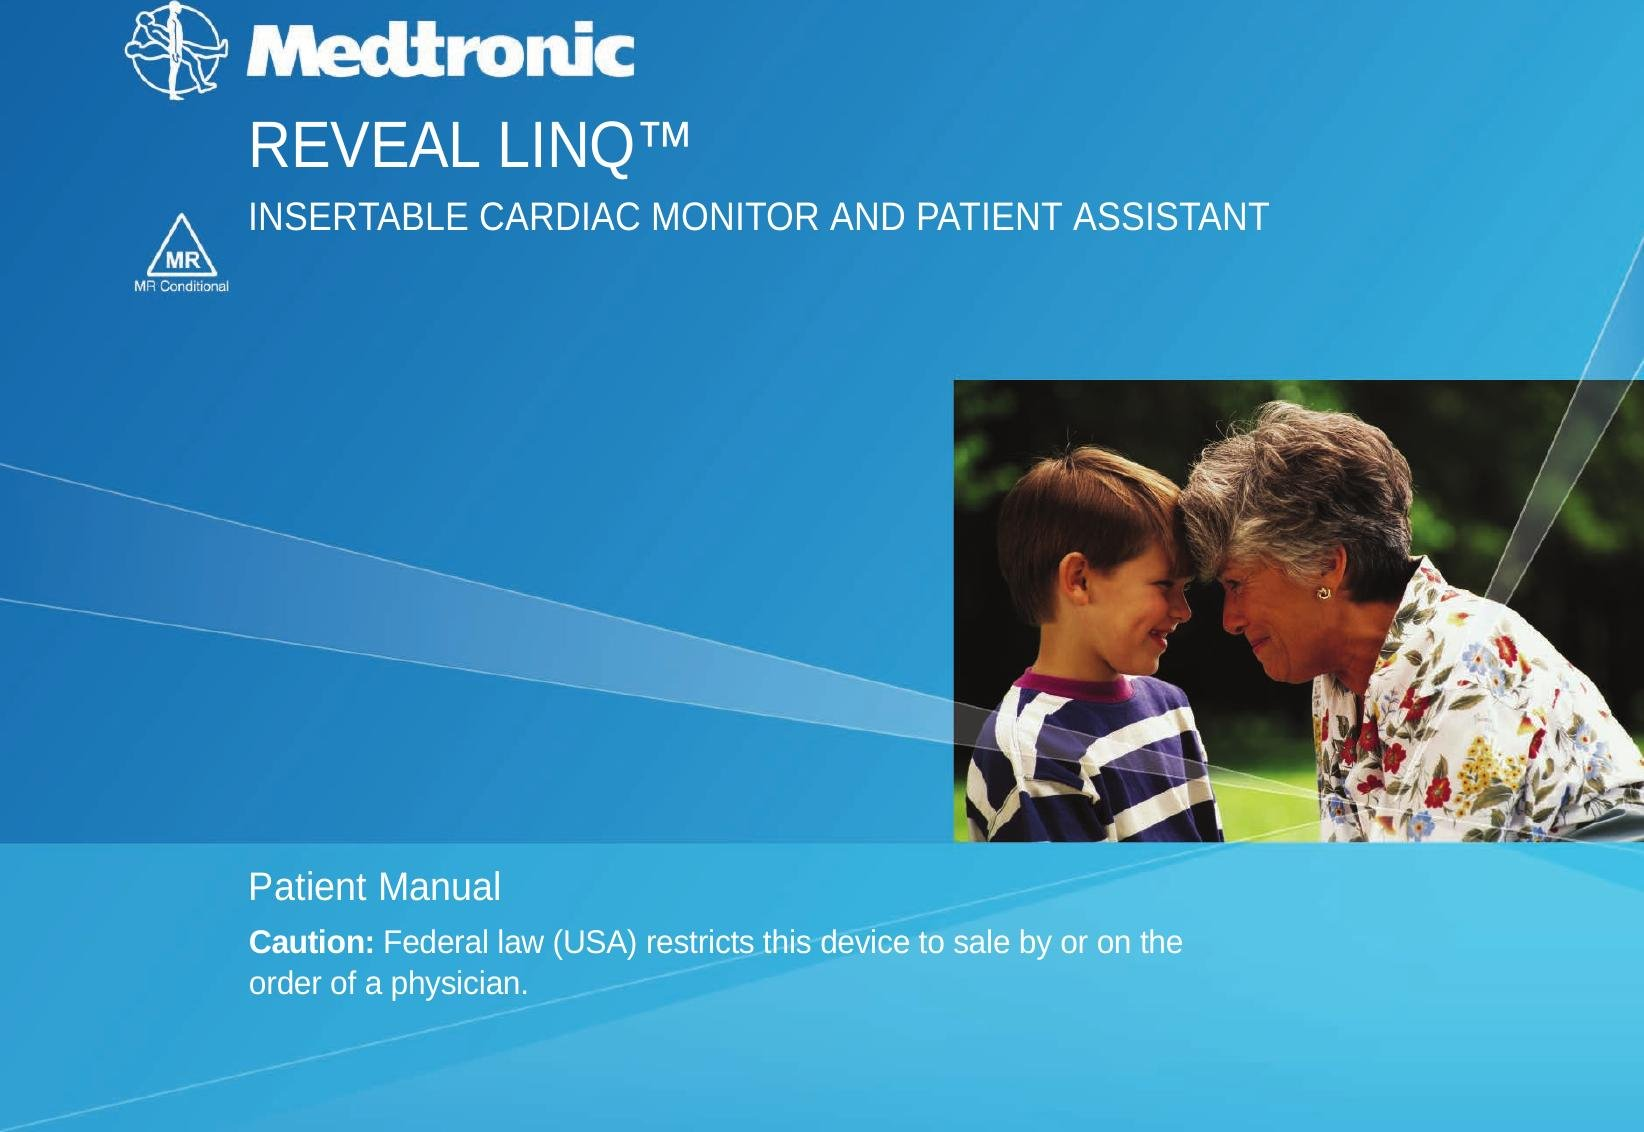 Medtronic Reveal Linq Troubleshooting